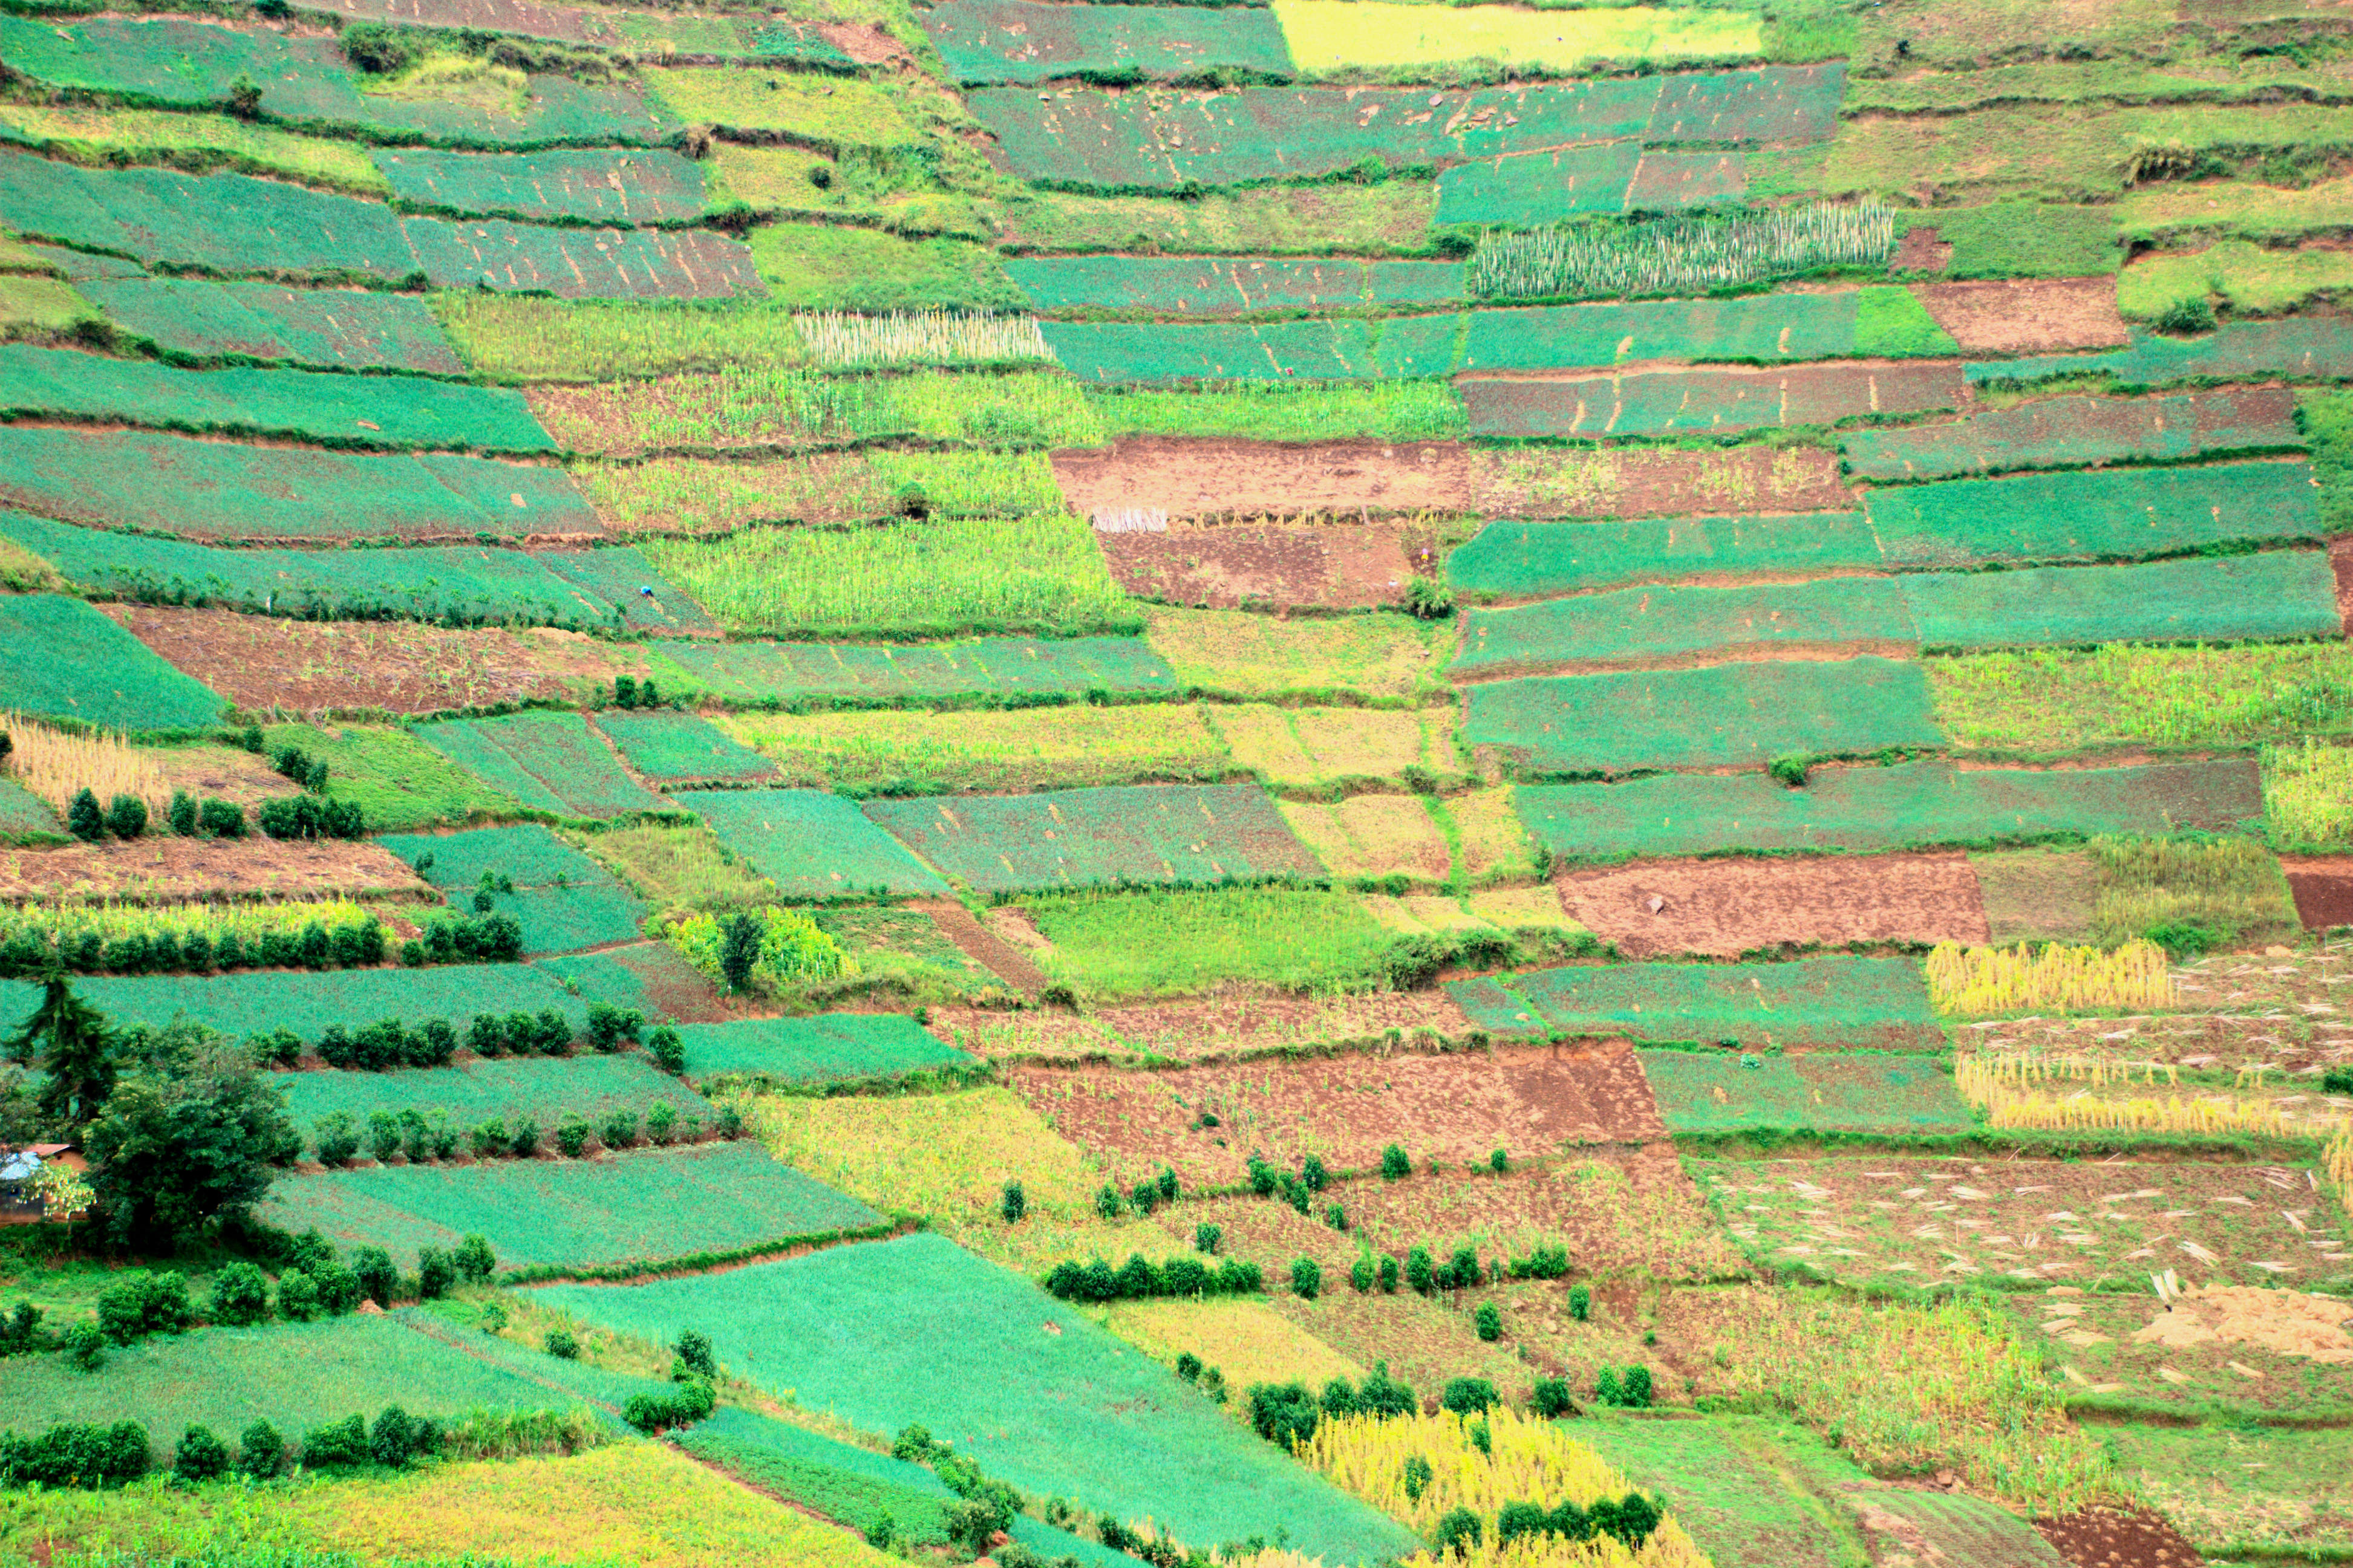 Onion fields on a hillside in southern Uganda